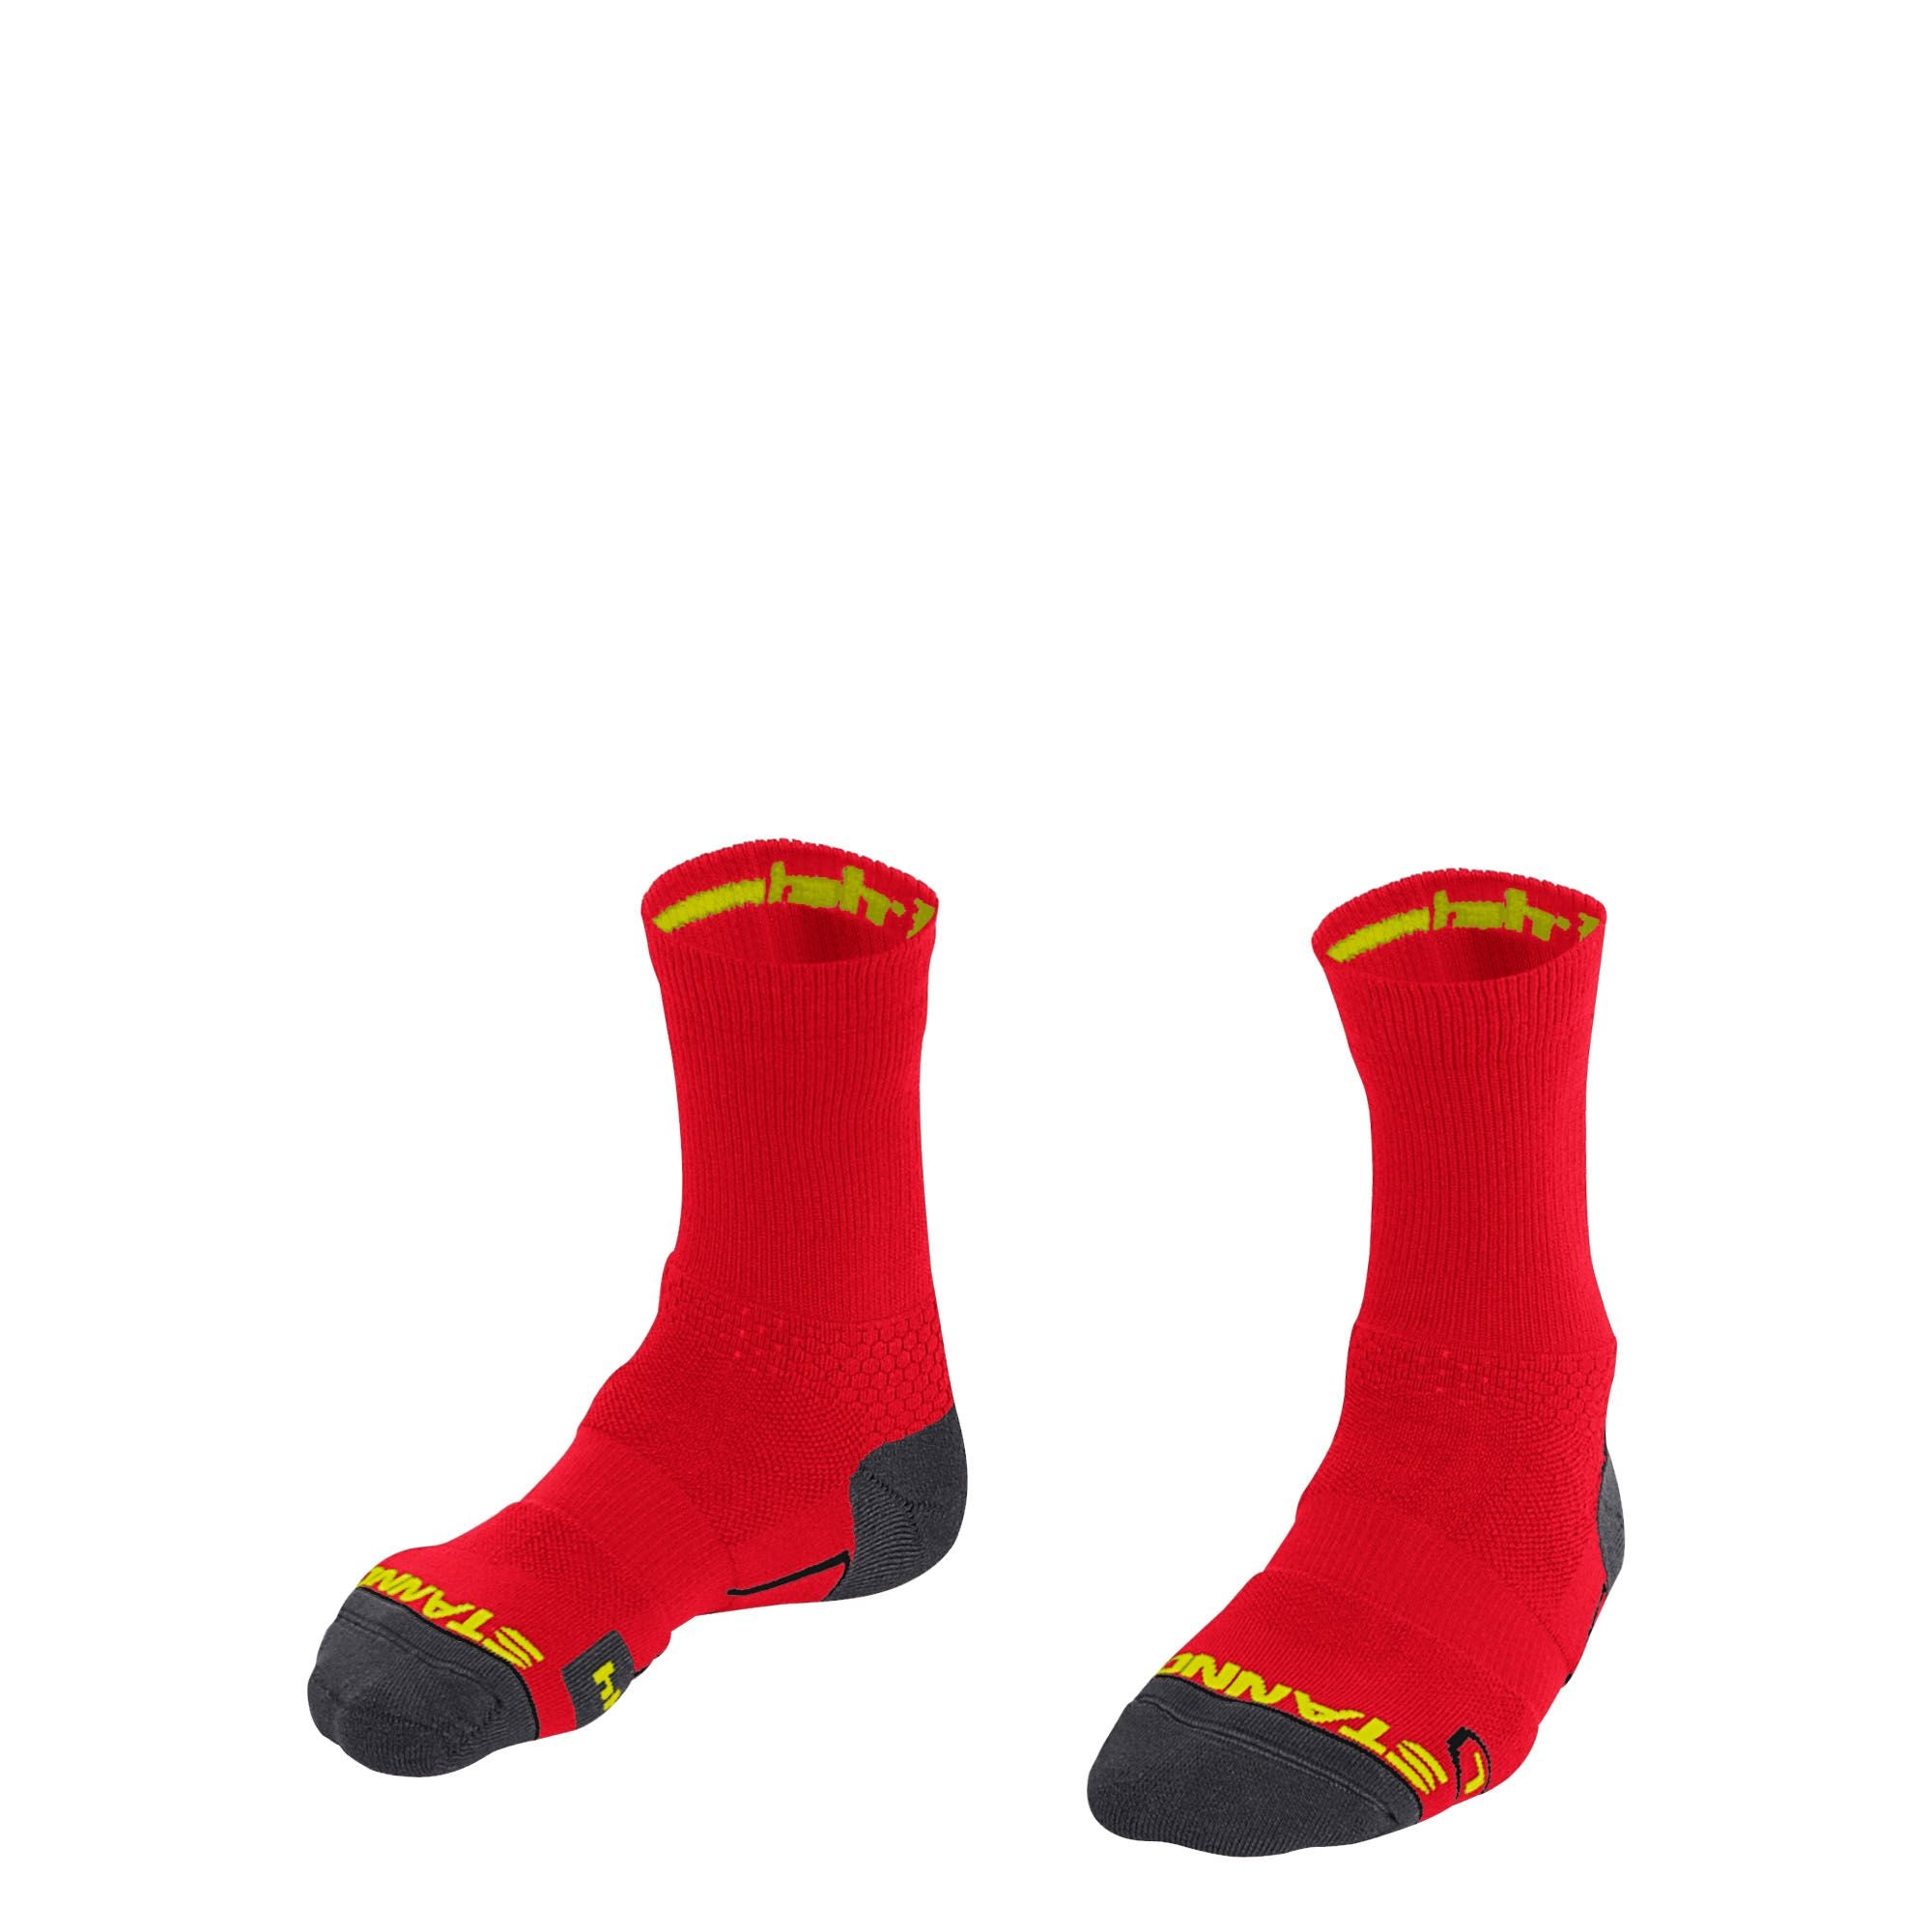 Stanno Advance Sock - Red